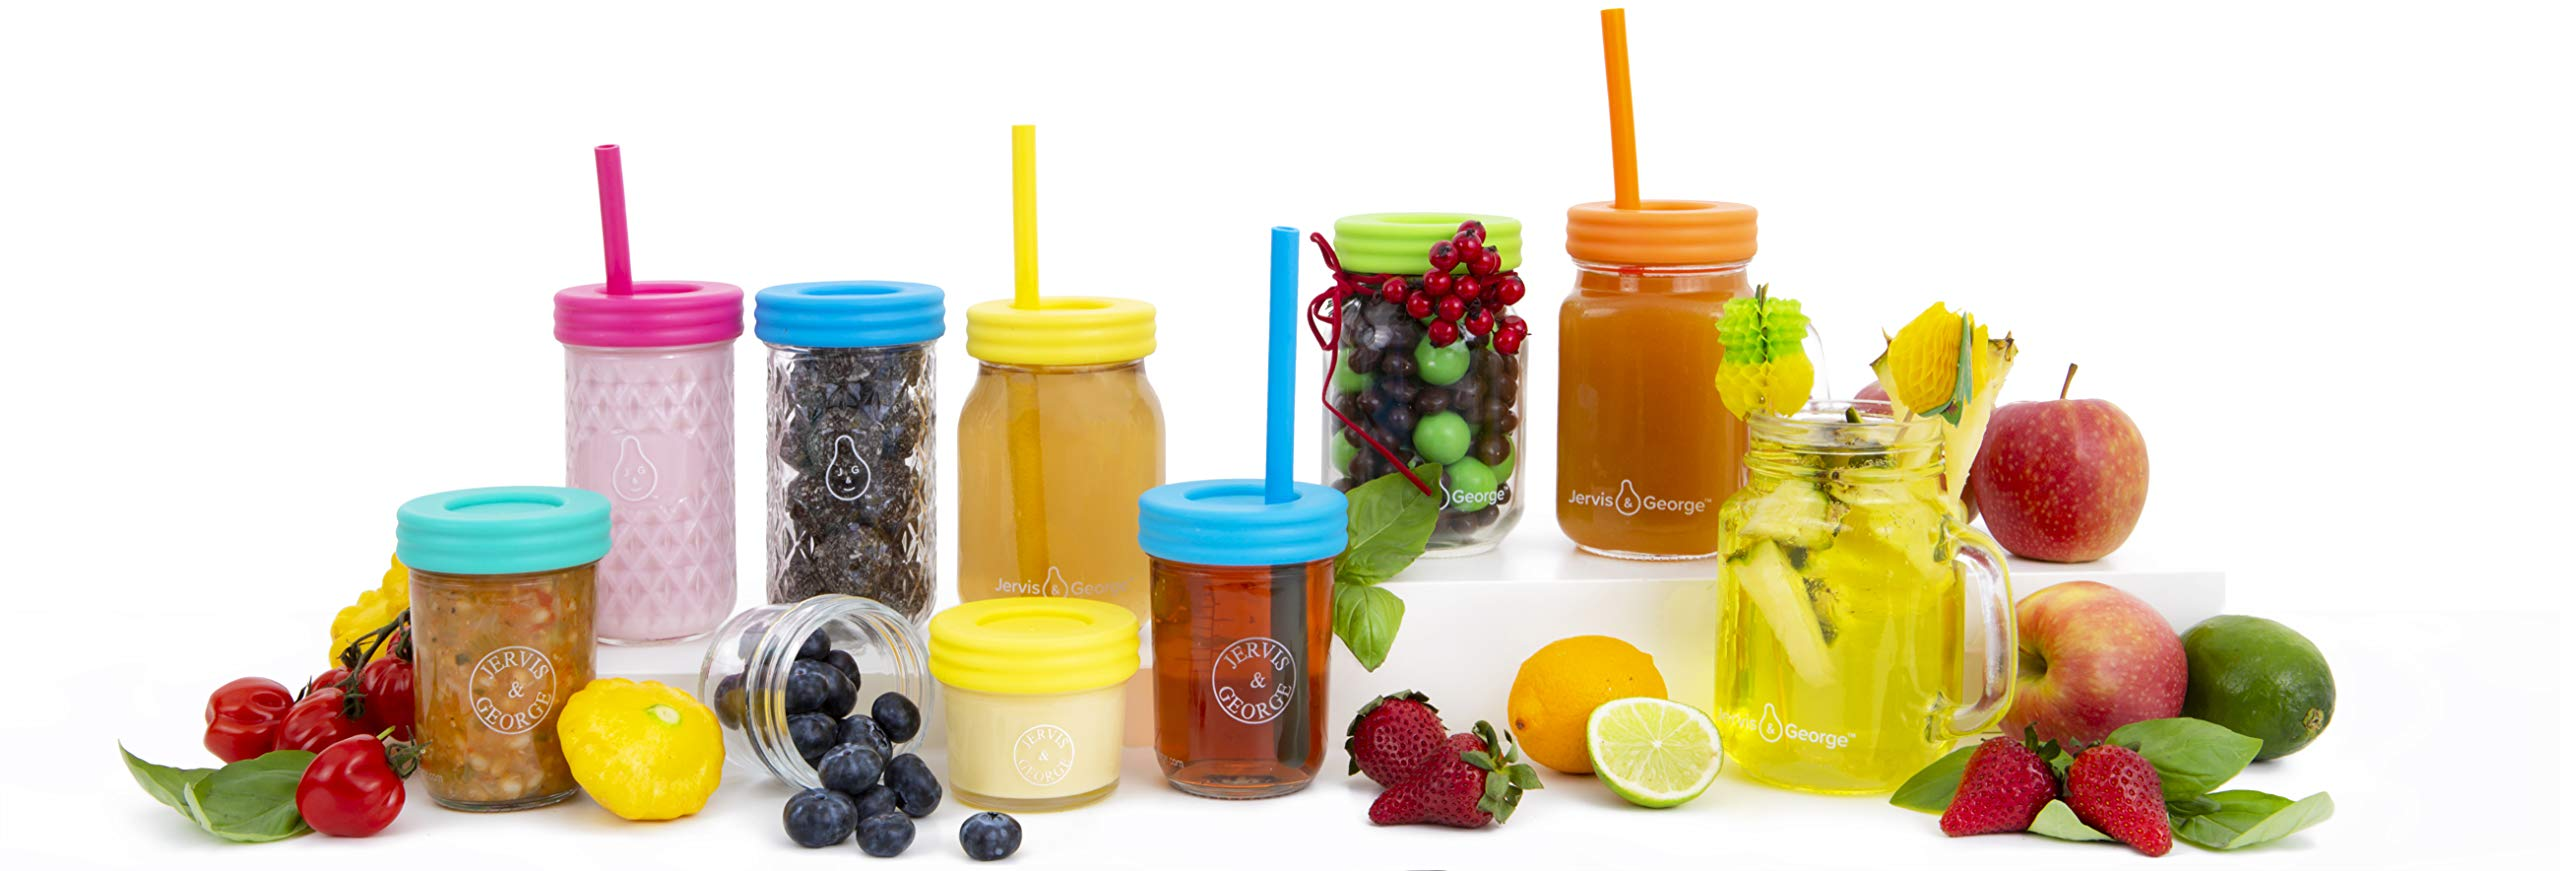 Kids 12oz Glass Mason Jar Drinking Cups with Straw Lids + Leak Proof Regular Lids + Silicone Straws + Cleaning Brush - Spill Proof, Sippy Cups for Toddlers, Kids Drinking Glasses, Food Storage-8 Pack by Jervis & George (Image #6)